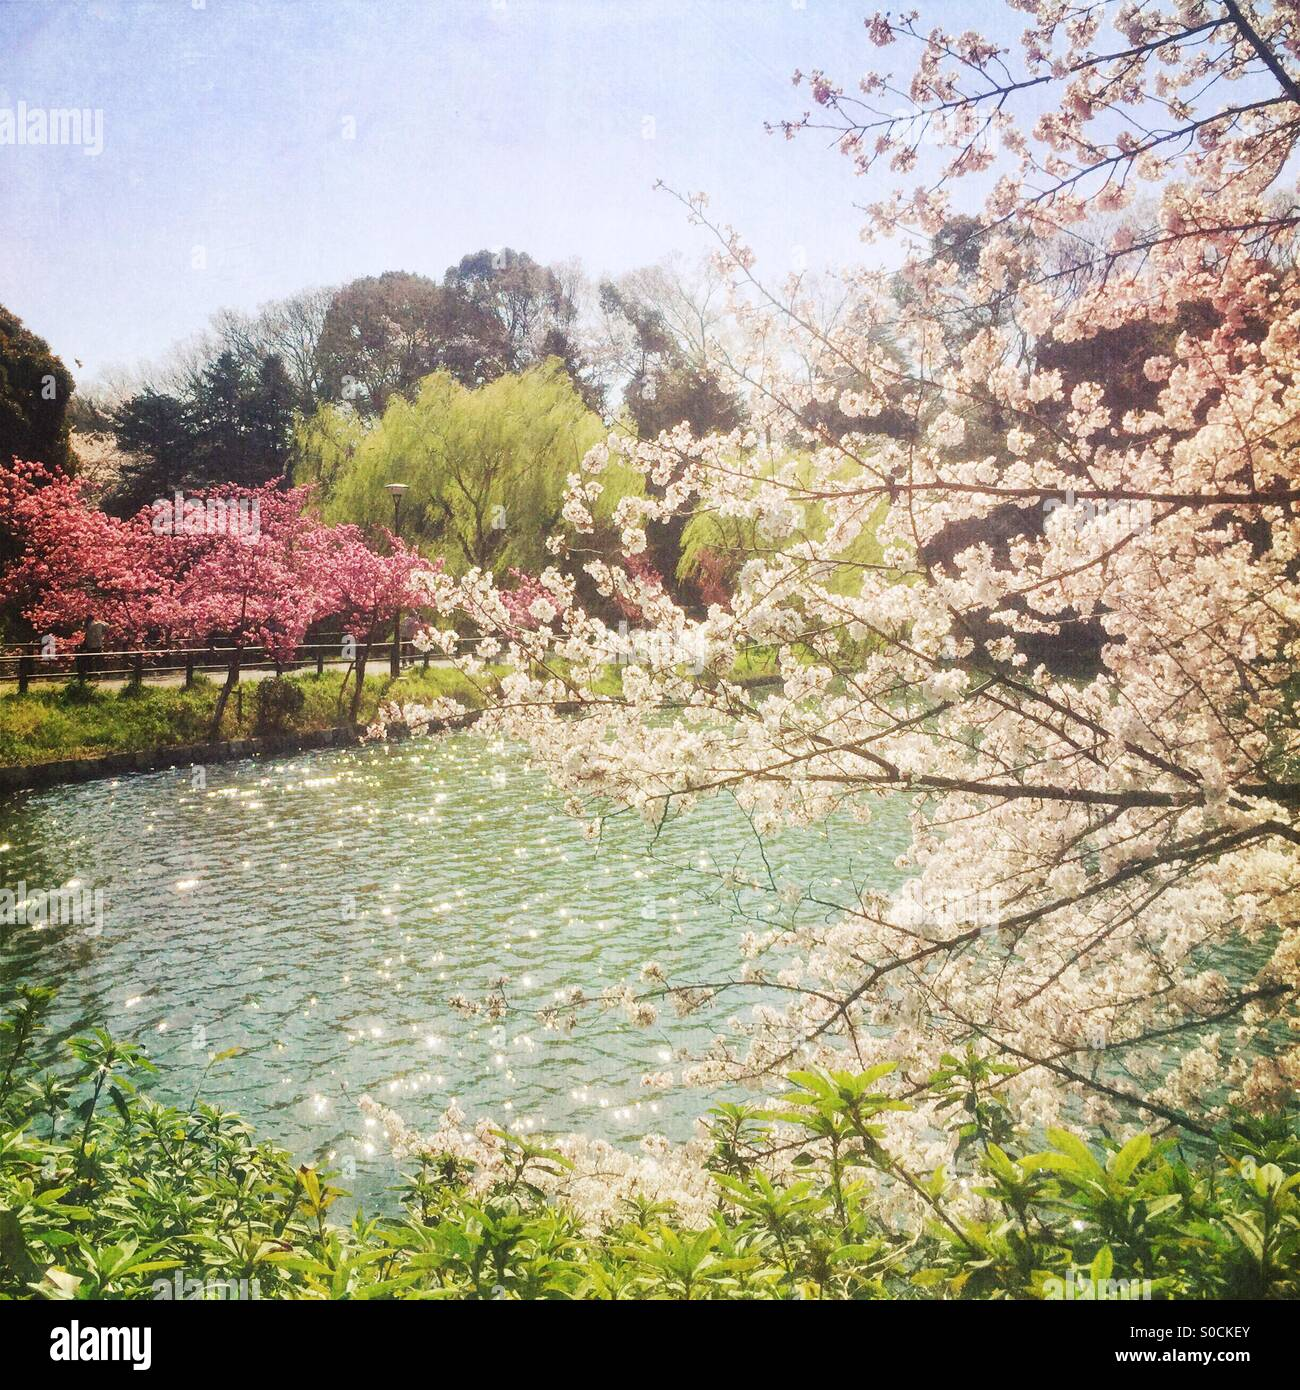 Pond with sunshine sparkling on the water surface, with sakura or cherry blossom in white and pink hues, and willow - Stock Image